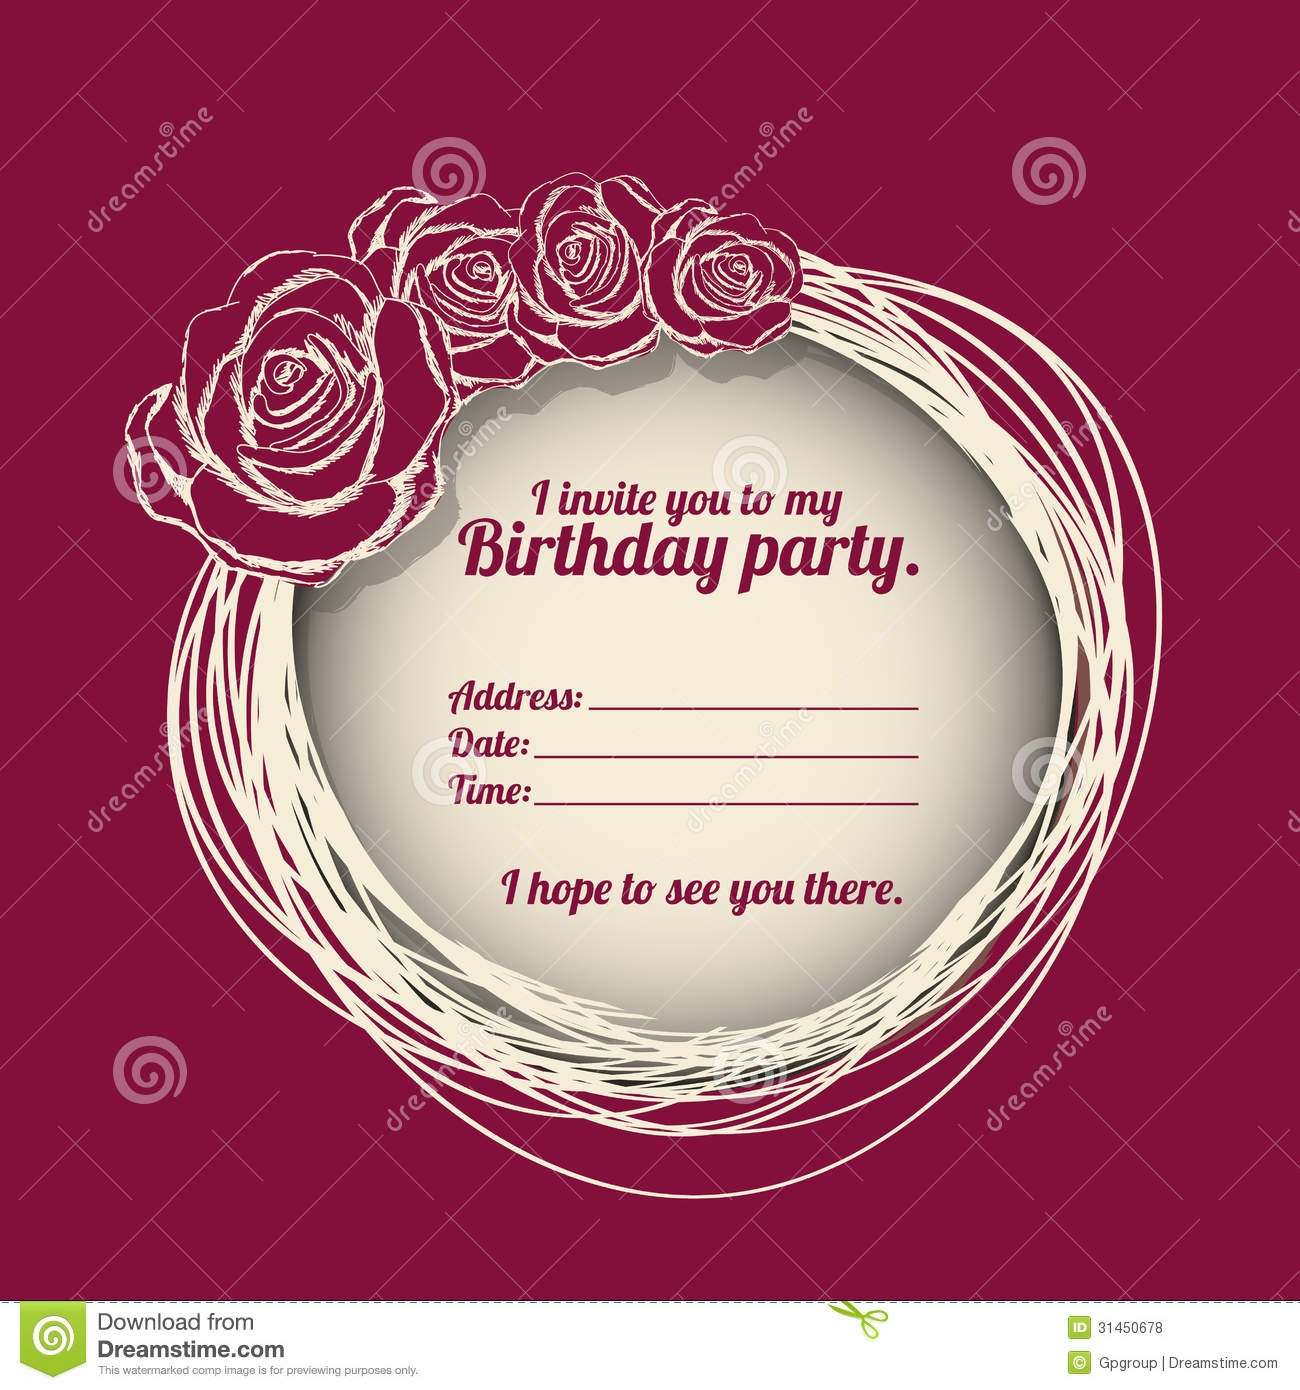 Birthday party invitation stock vector illustration of bloom birthday party invitation stopboris Gallery